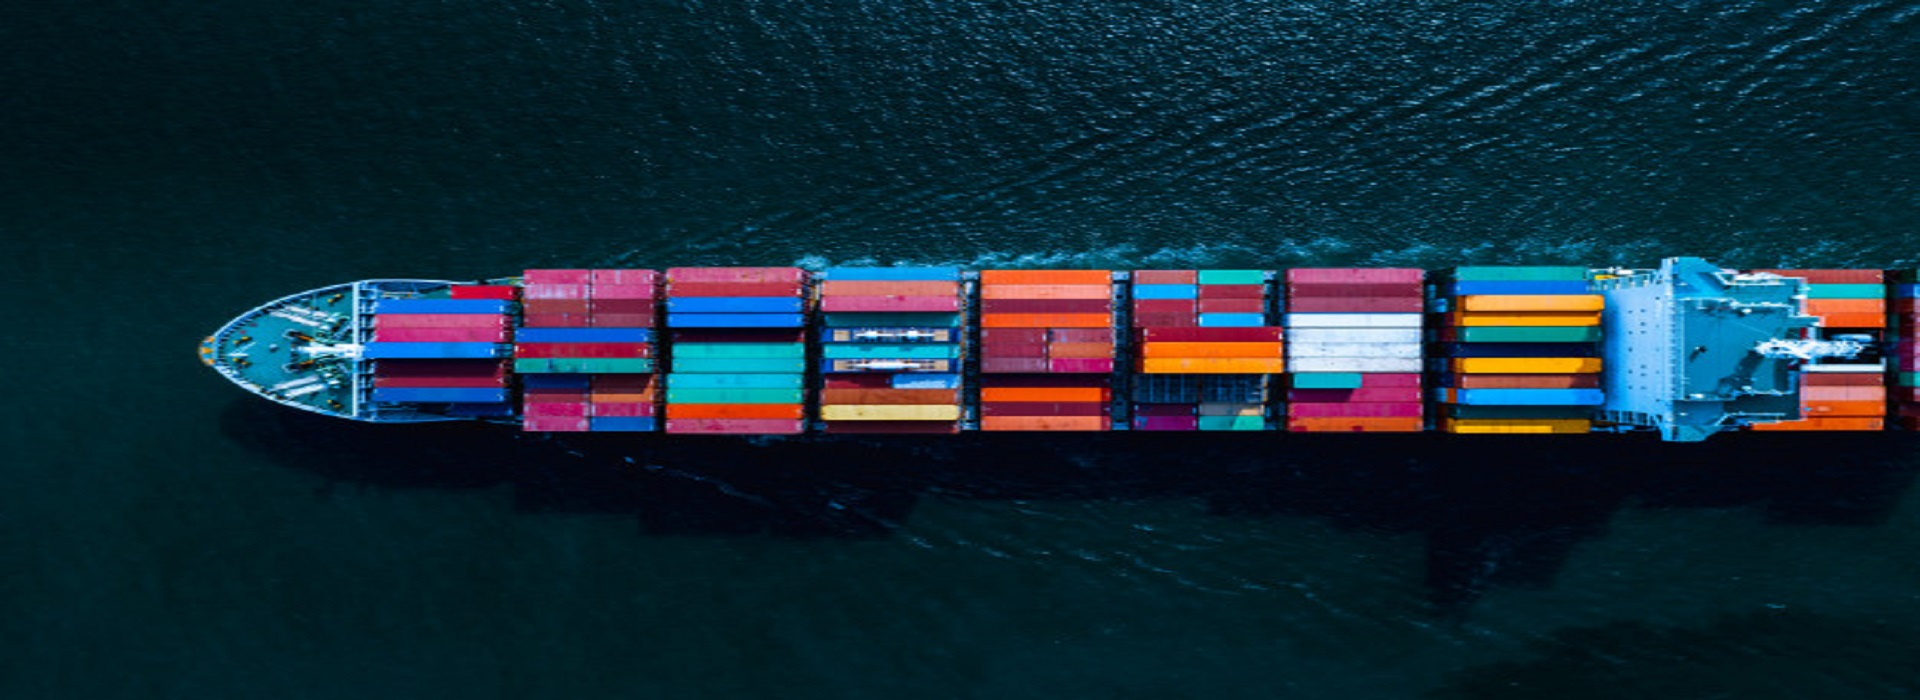 shipping-cargo-container-transportation-business-services-international-aerial-view_44353-1652